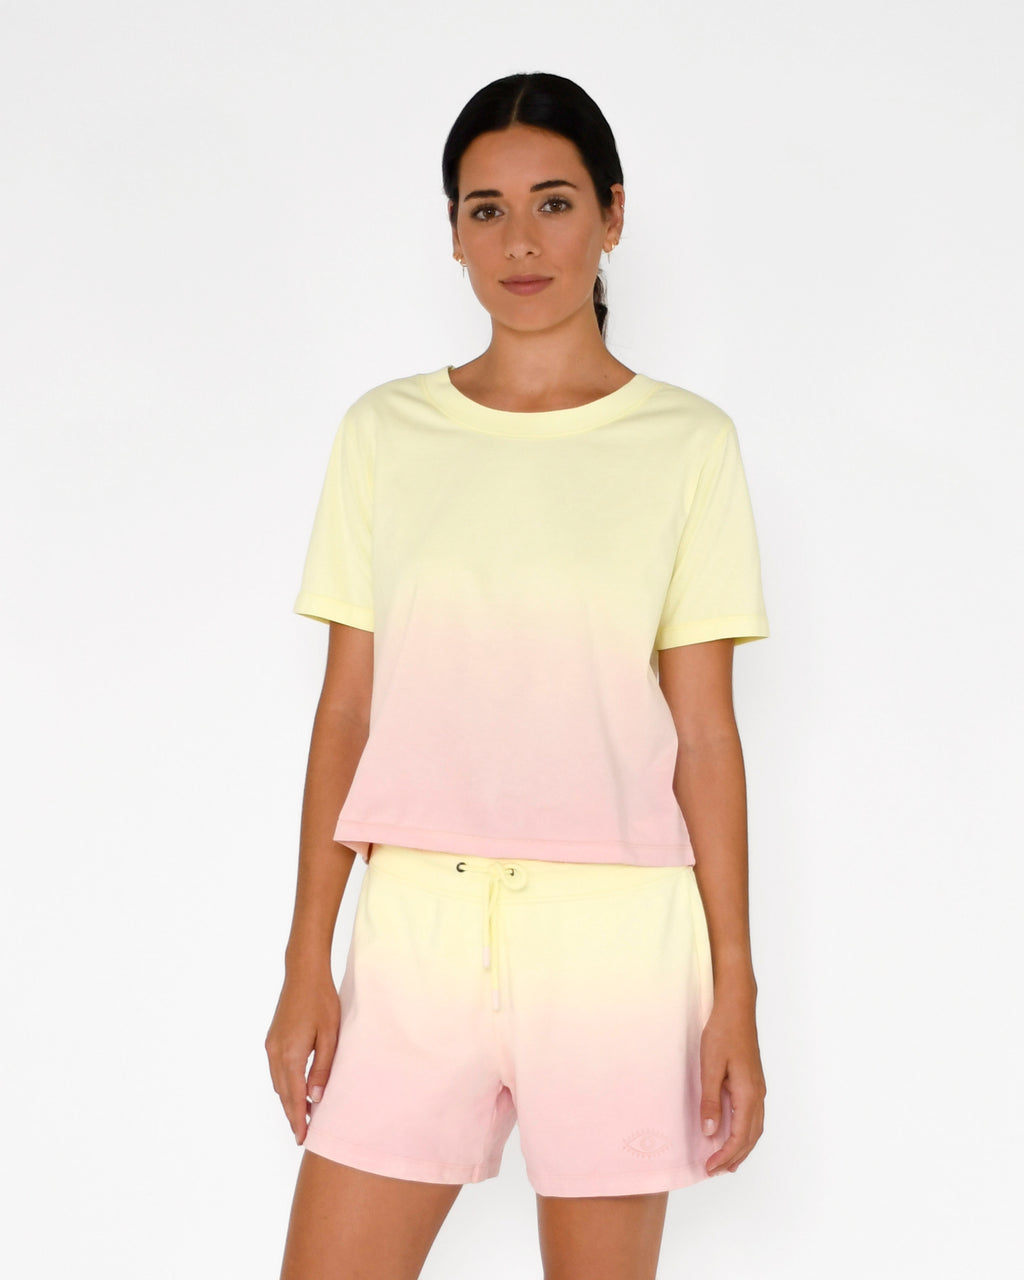 CT18813 - SORBET DIP DYE T-SHIRT - tops - knitwear - This classic crew neck tee gets a major upgrade in our candy colored ombre. Add 1 line break Stylist Tip: Pair with a white mini skirt or the coordinating shorts.